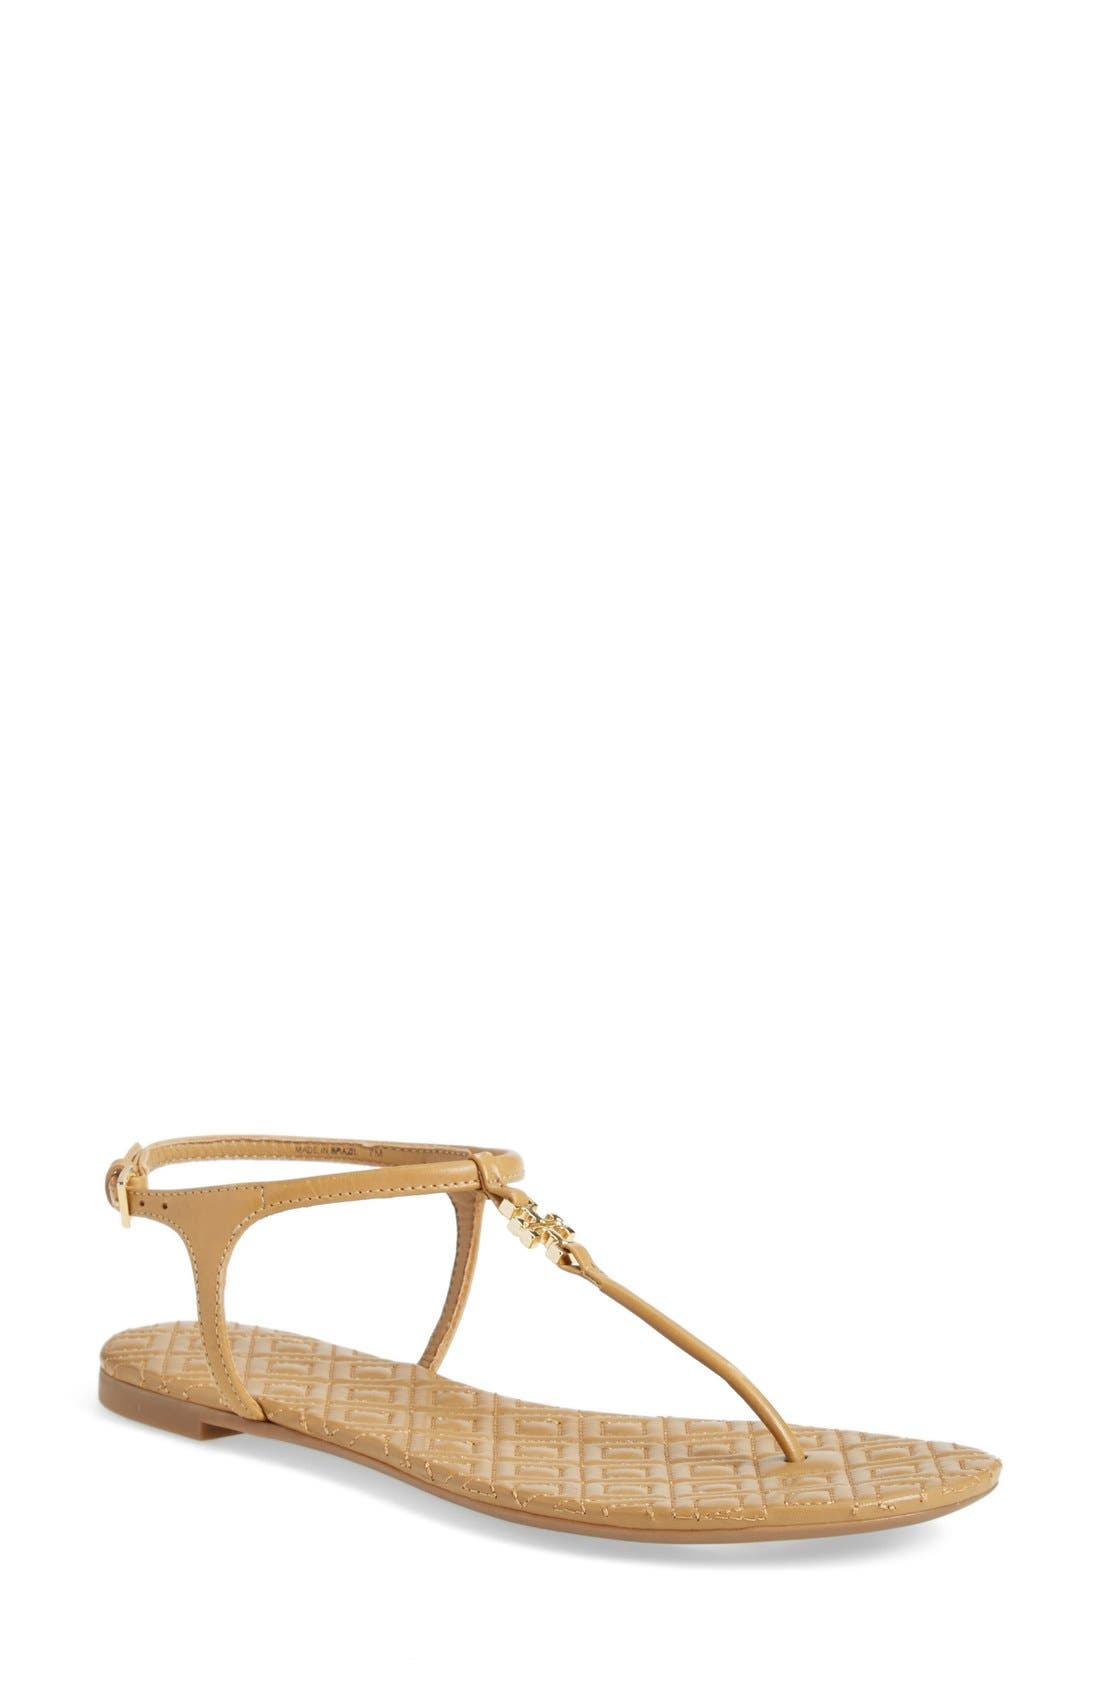 'Marion' Quilted Sandal,                             Main thumbnail 1, color,                             Sand Leather